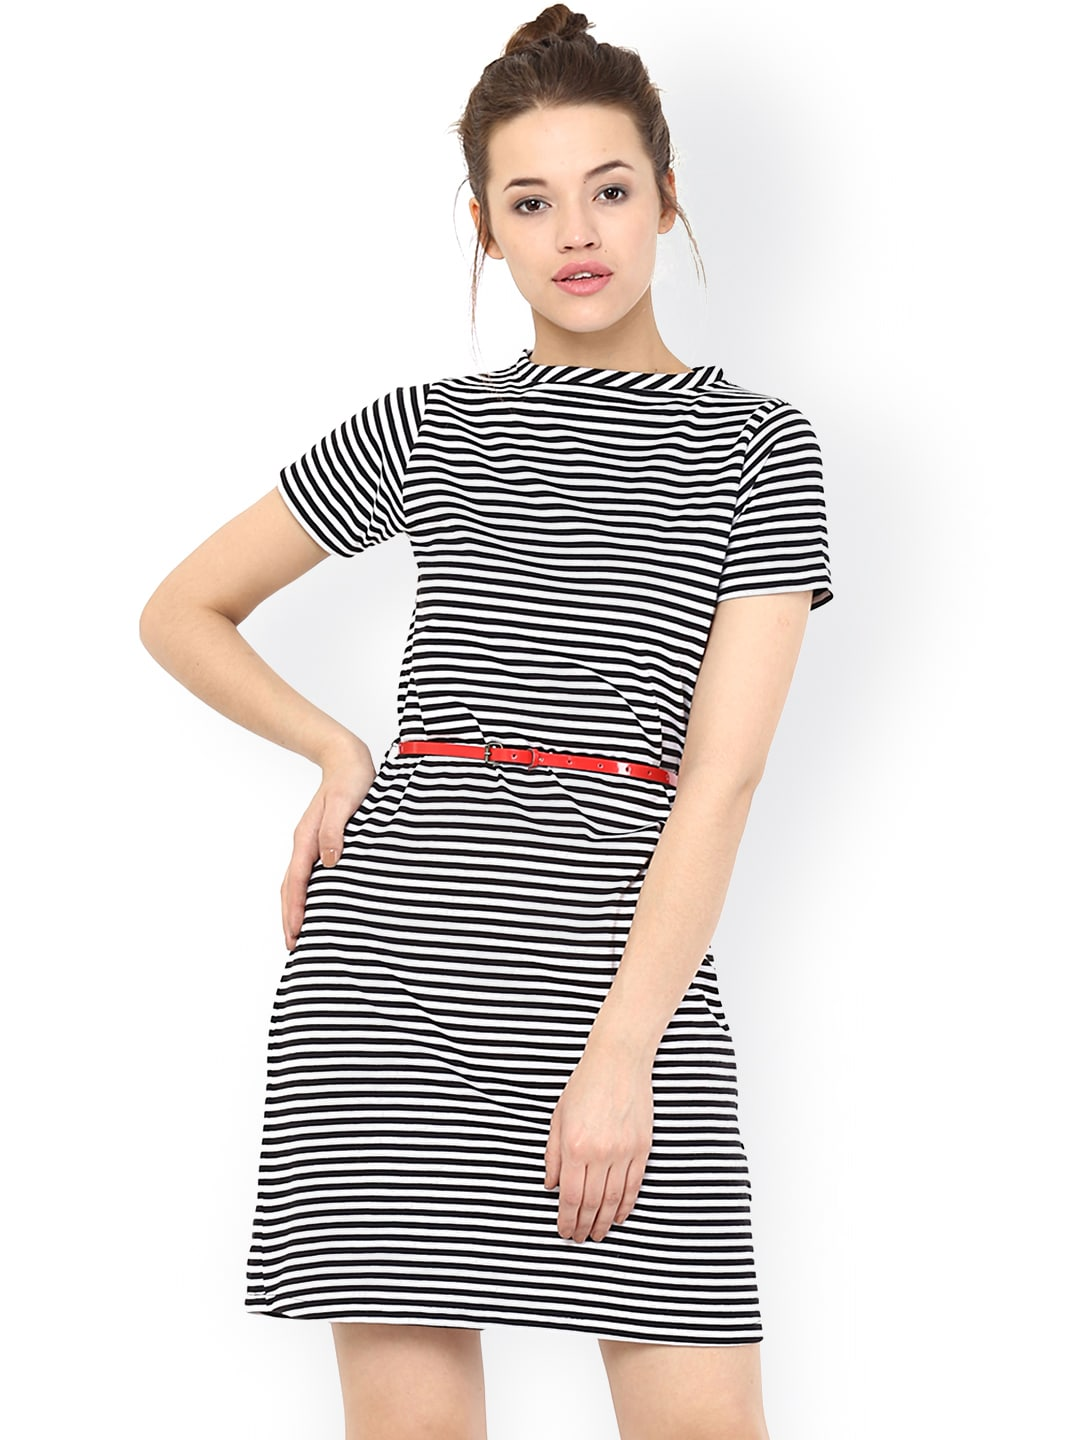 3c66495e044 Striped Dress - Buy Striped Dress online in India